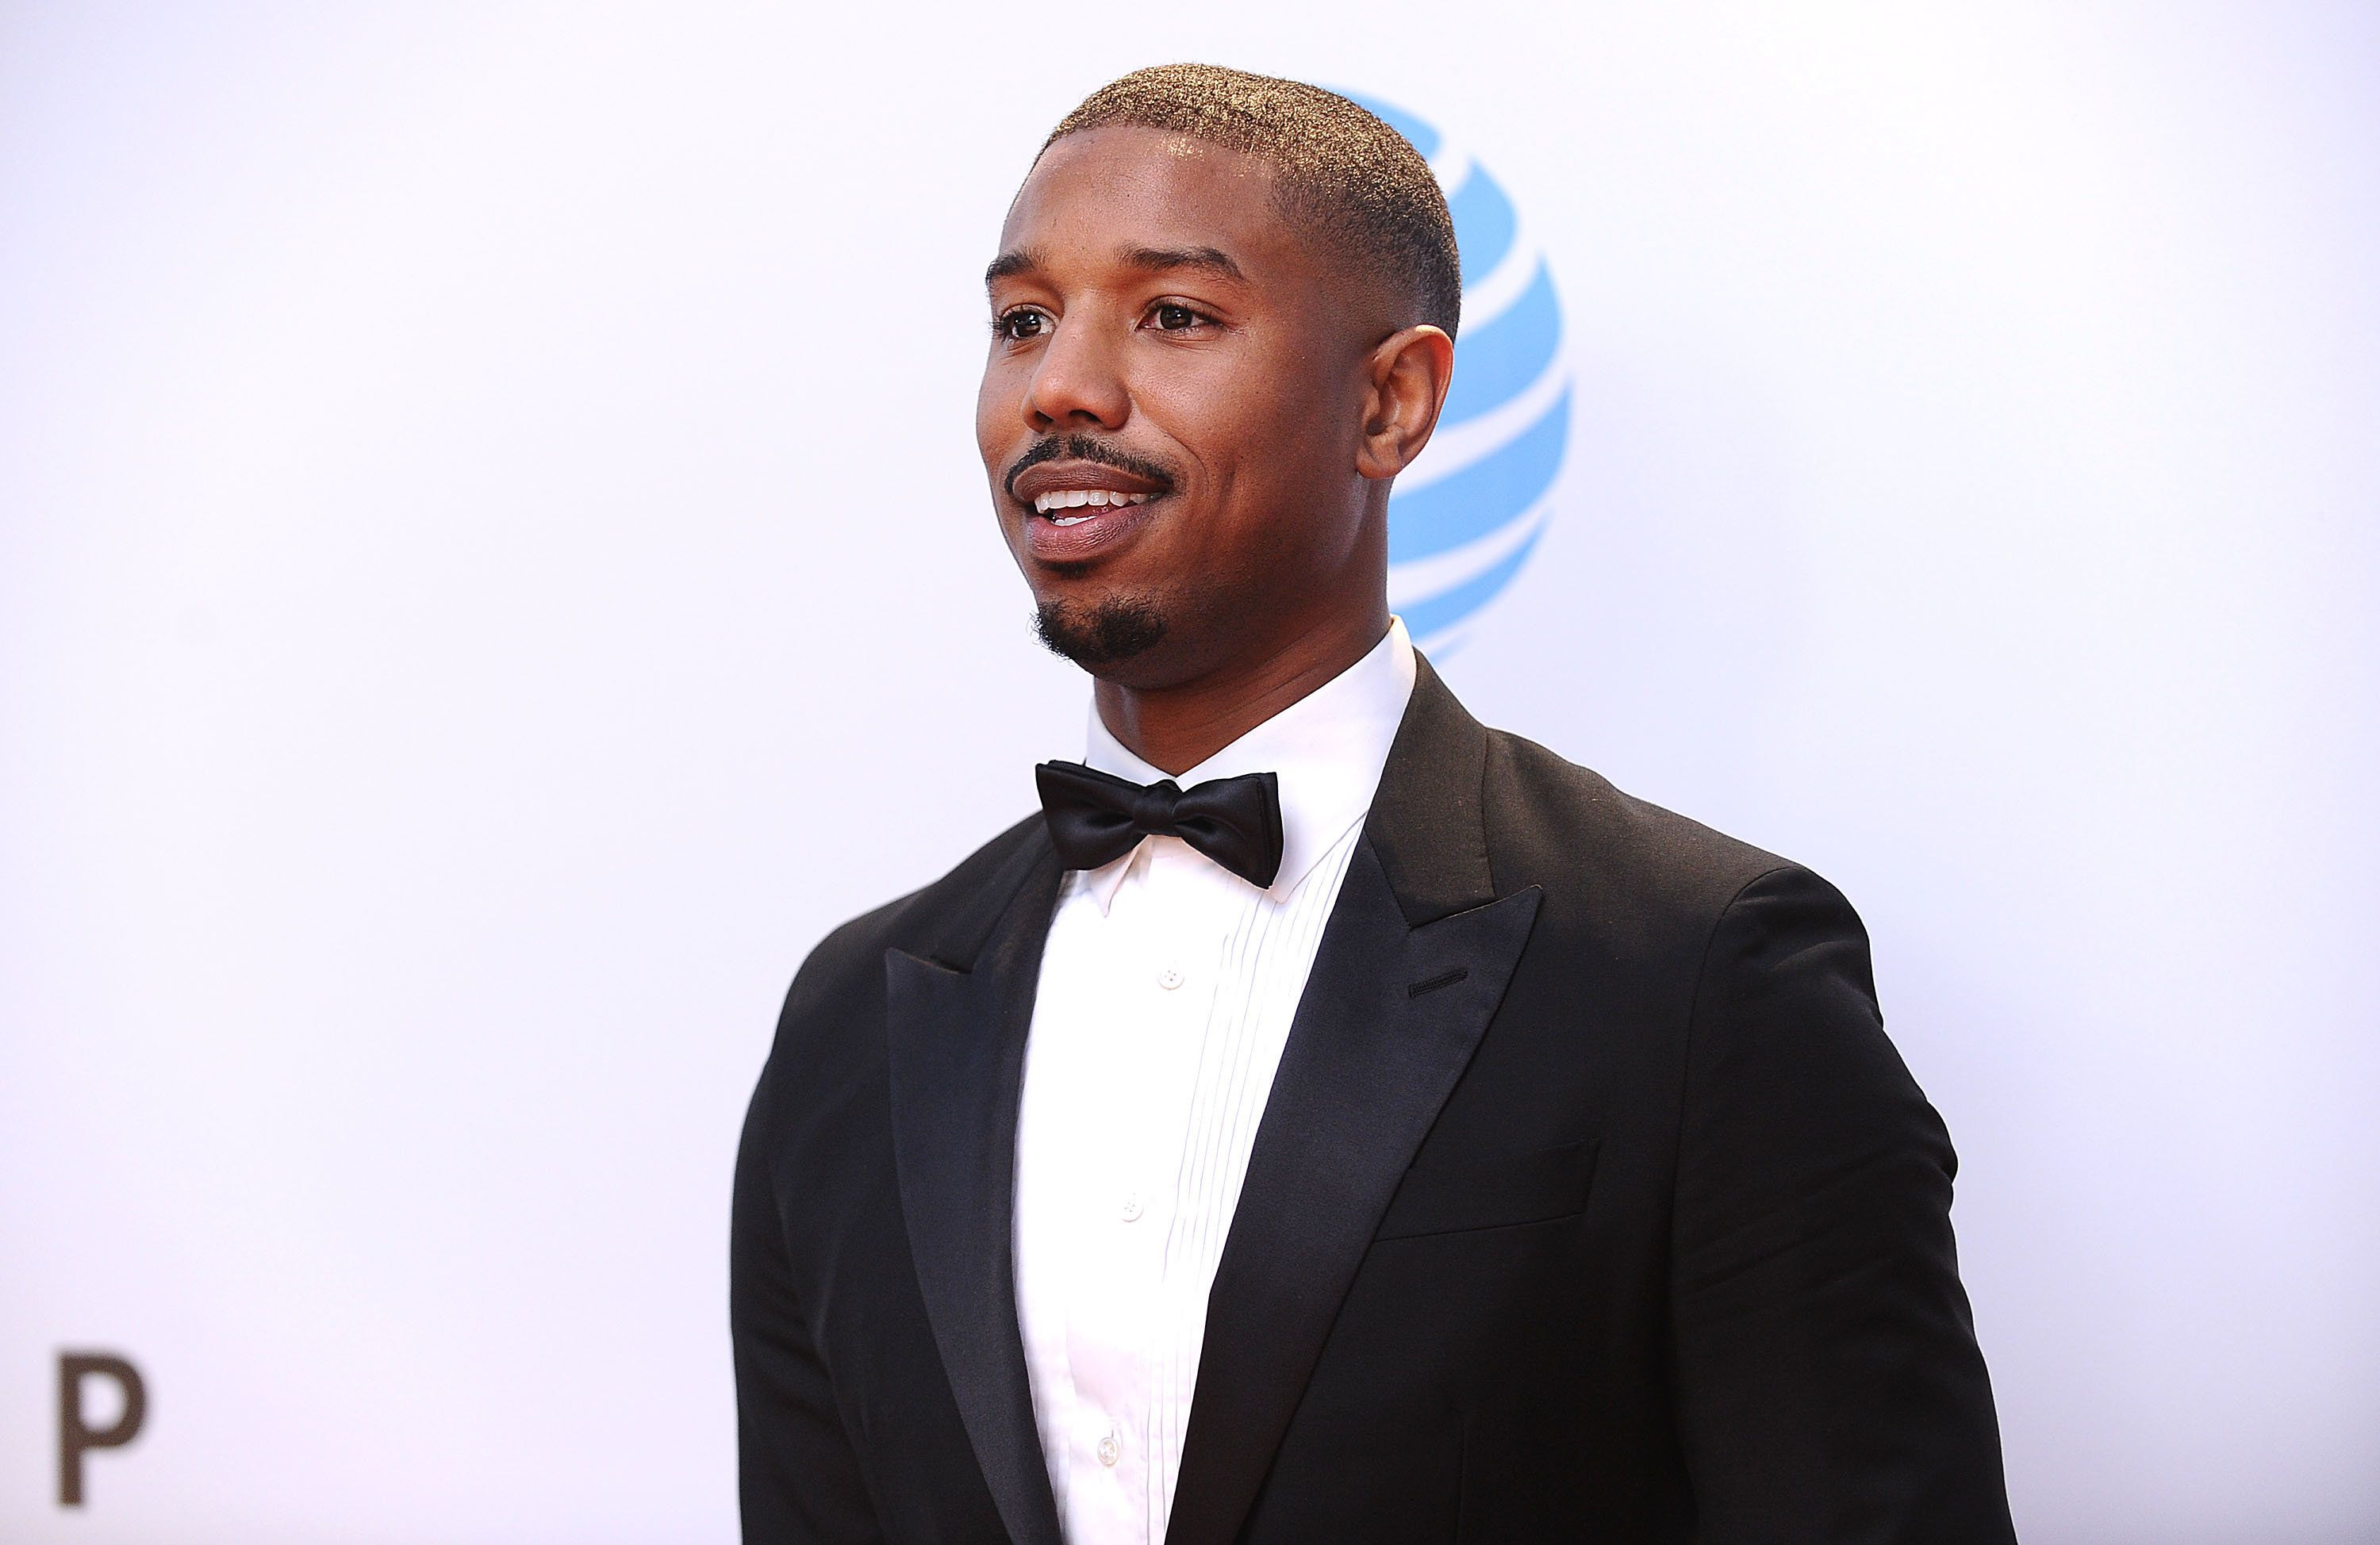 PASADENA, CA - FEBRUARY 05:  Actor Michael B. Jordan attends the 47th NAACP Image Awards at Pasadena Civic Auditorium on February 5, 2016 in Pasadena, California.  (Photo by Jason LaVeris/FilmMagic)